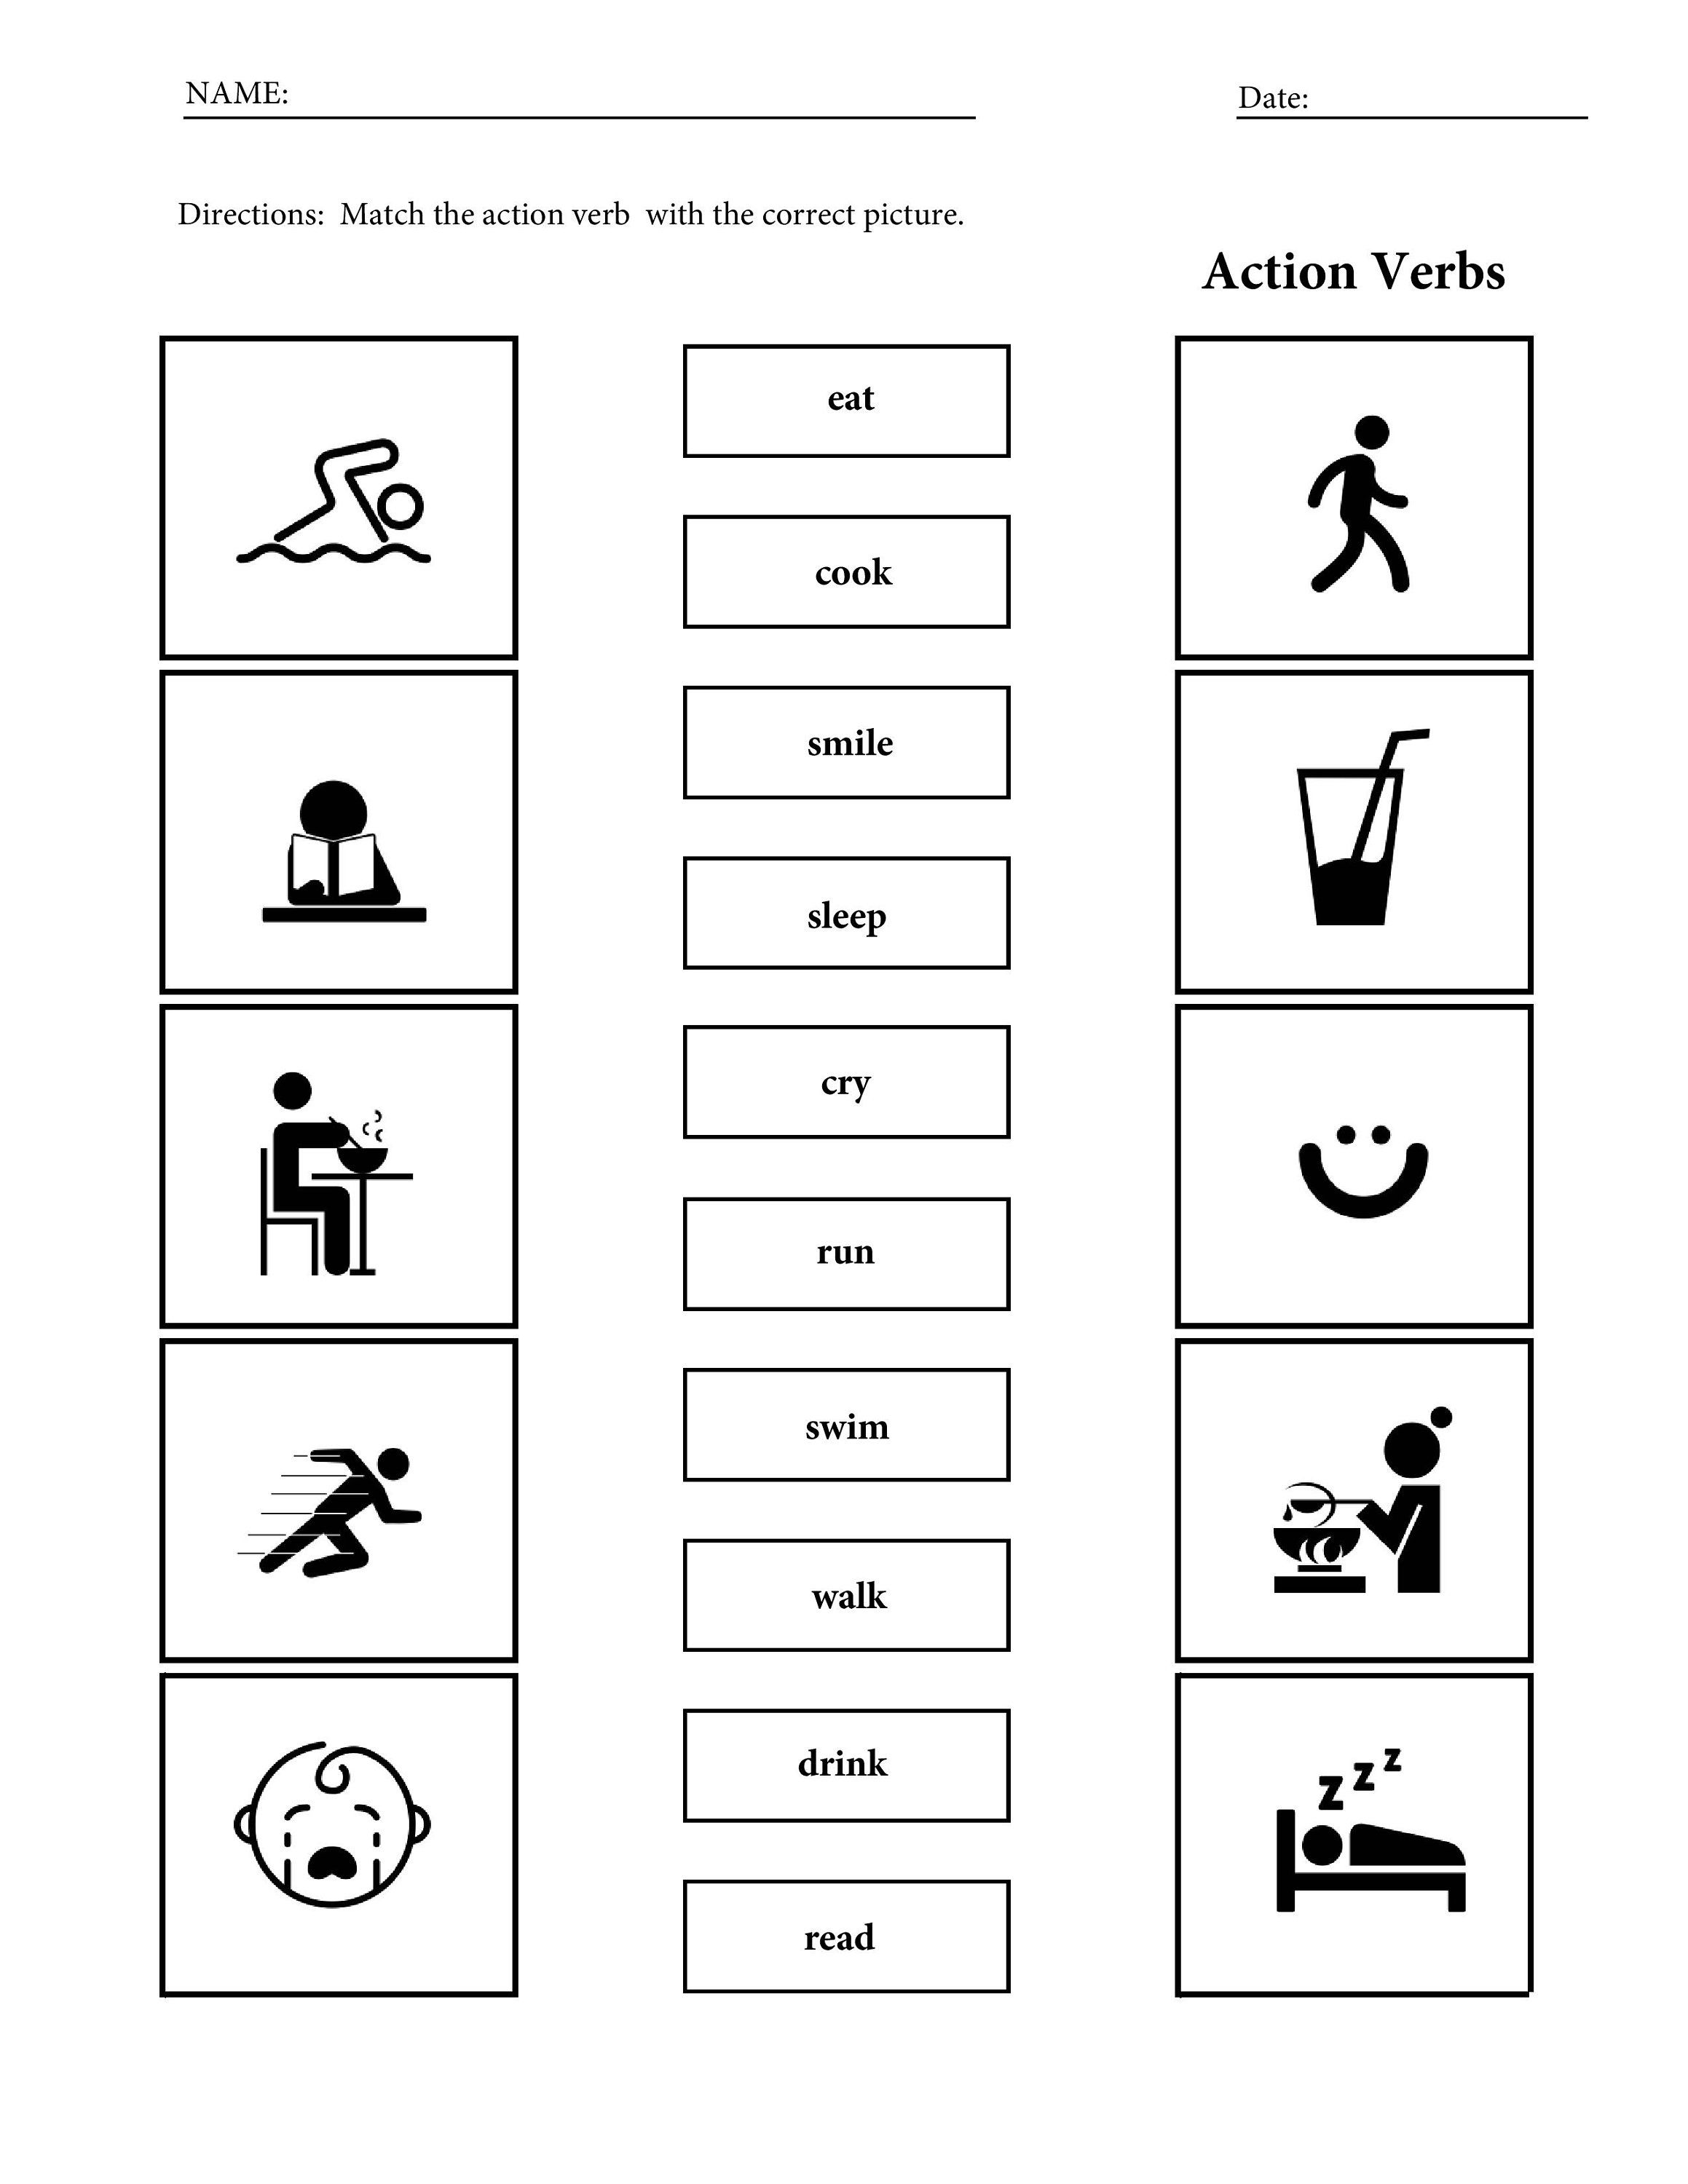 Printable Action Verbs Vocabulary Worksheets For Children